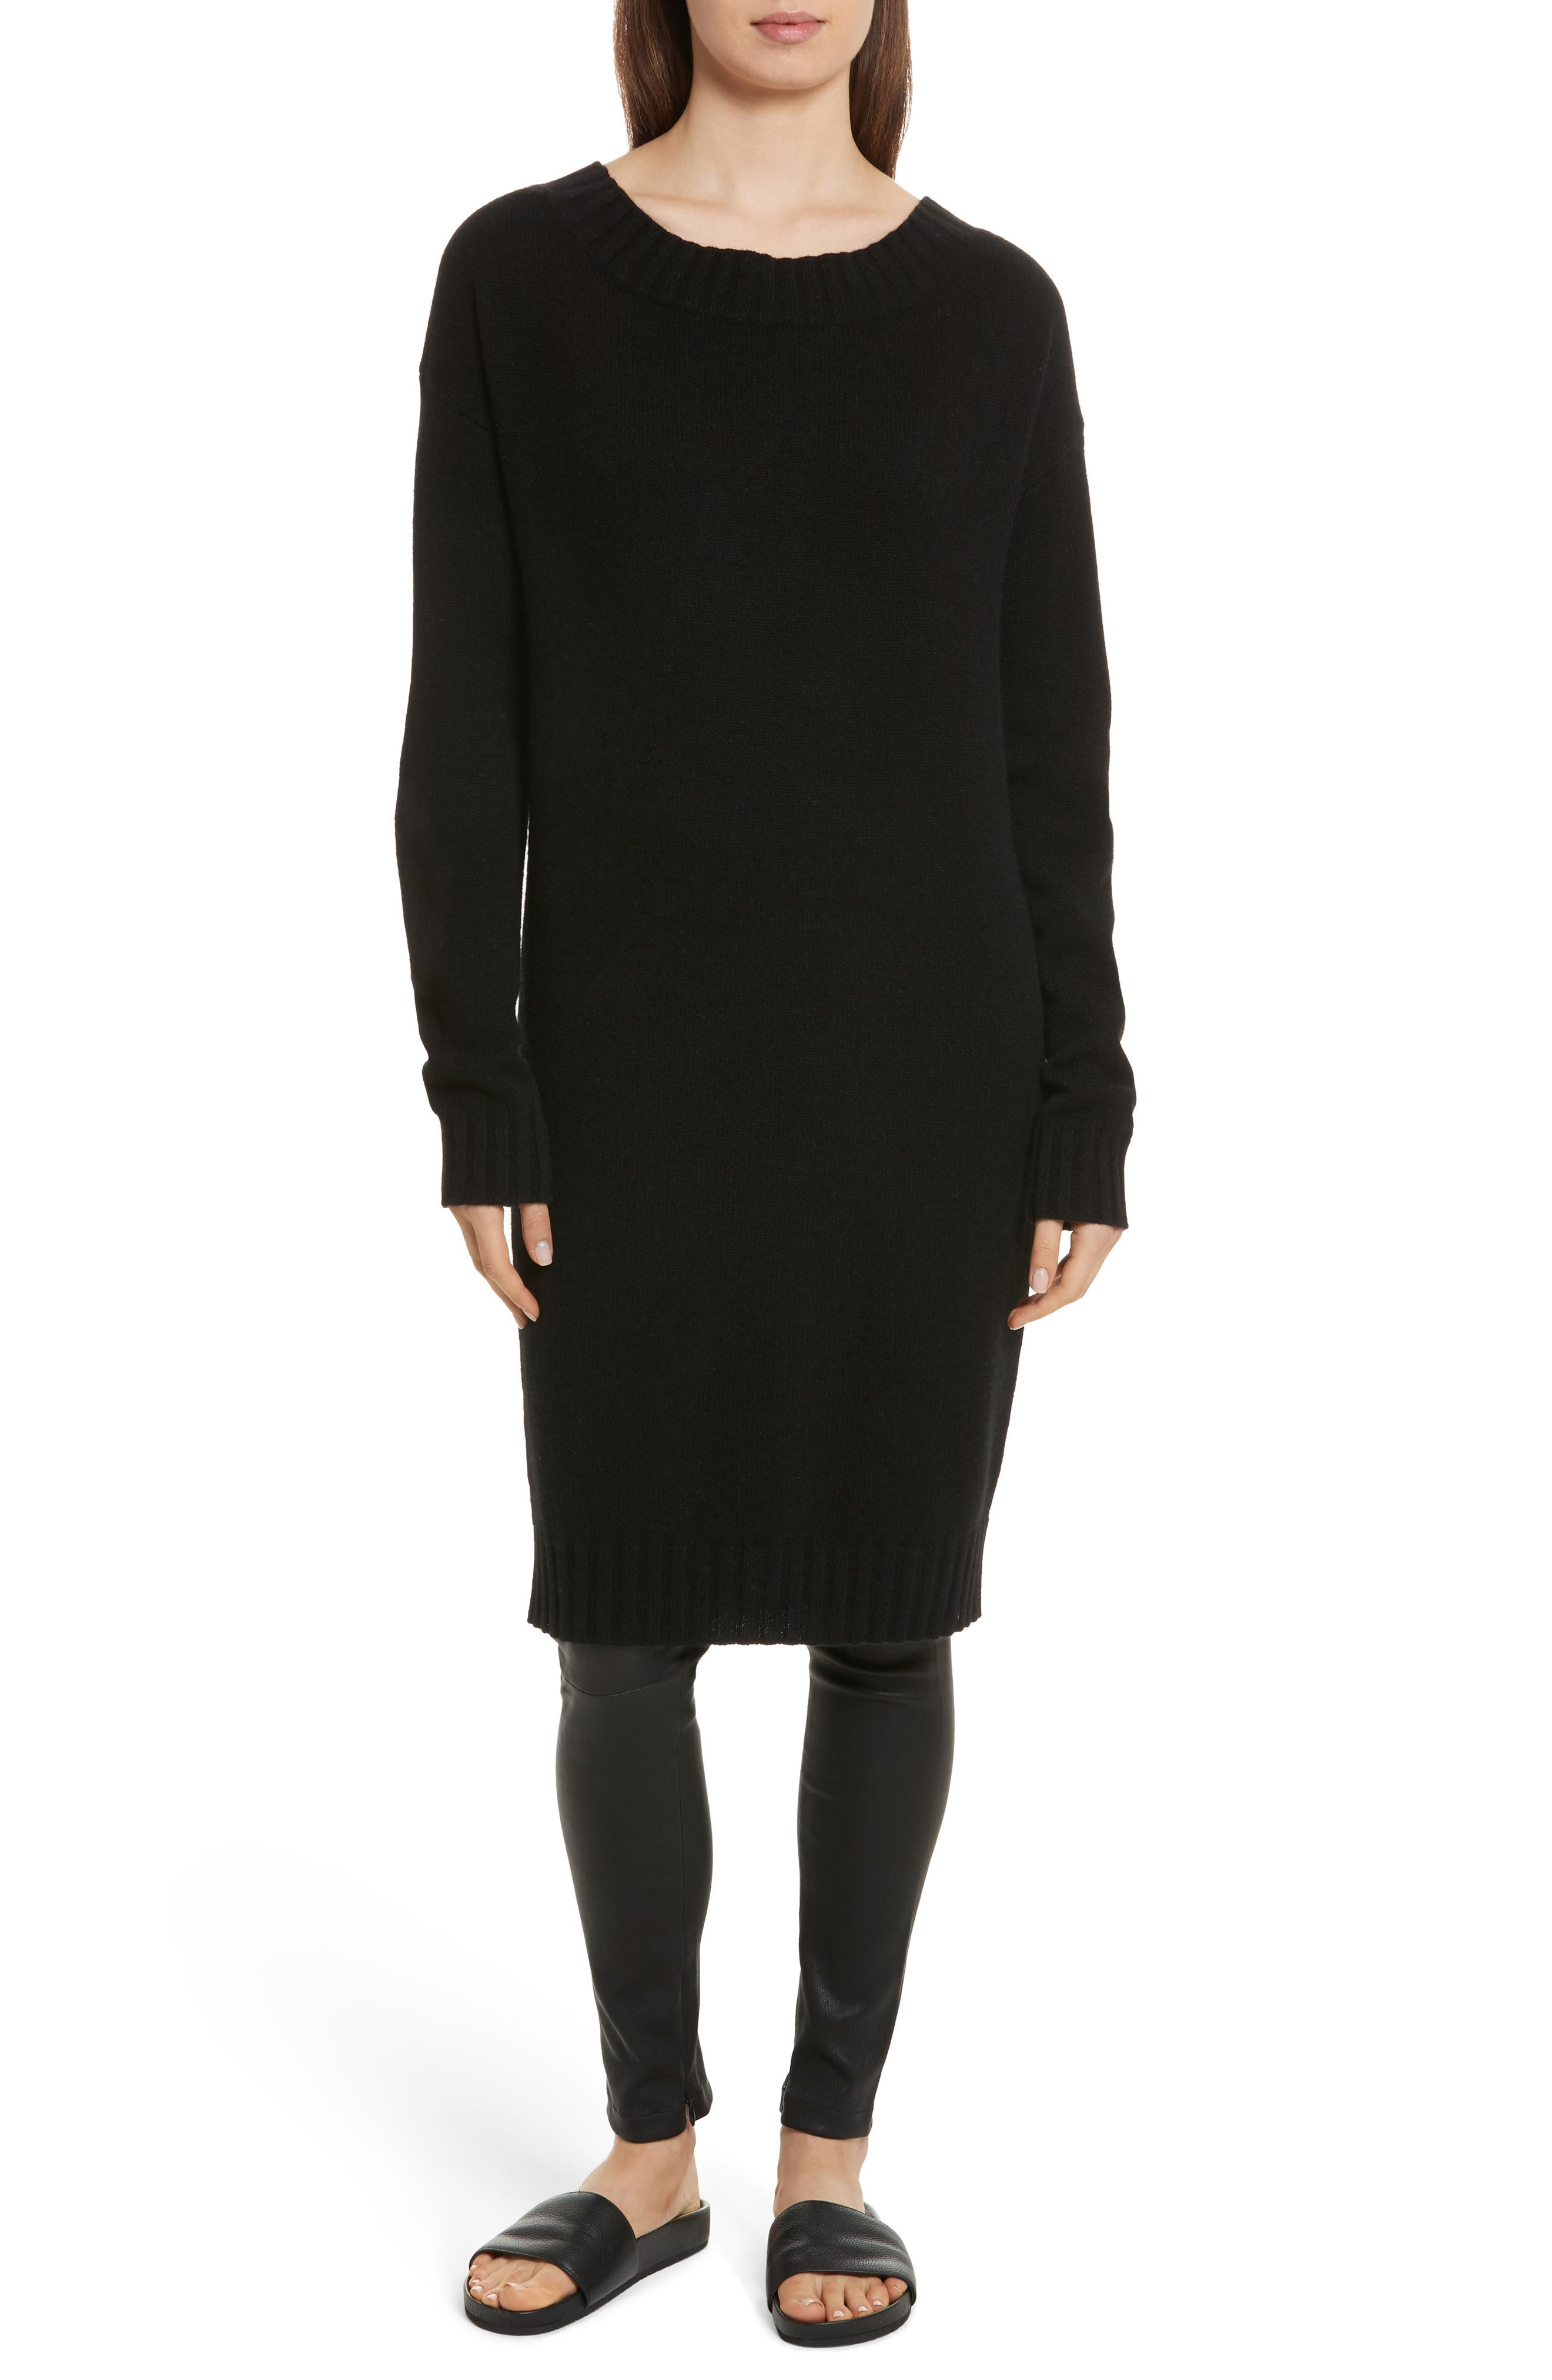 Alternate Image 1 Selected - Vince Off the Shoulder Wool & Cashmere Sweater Dress